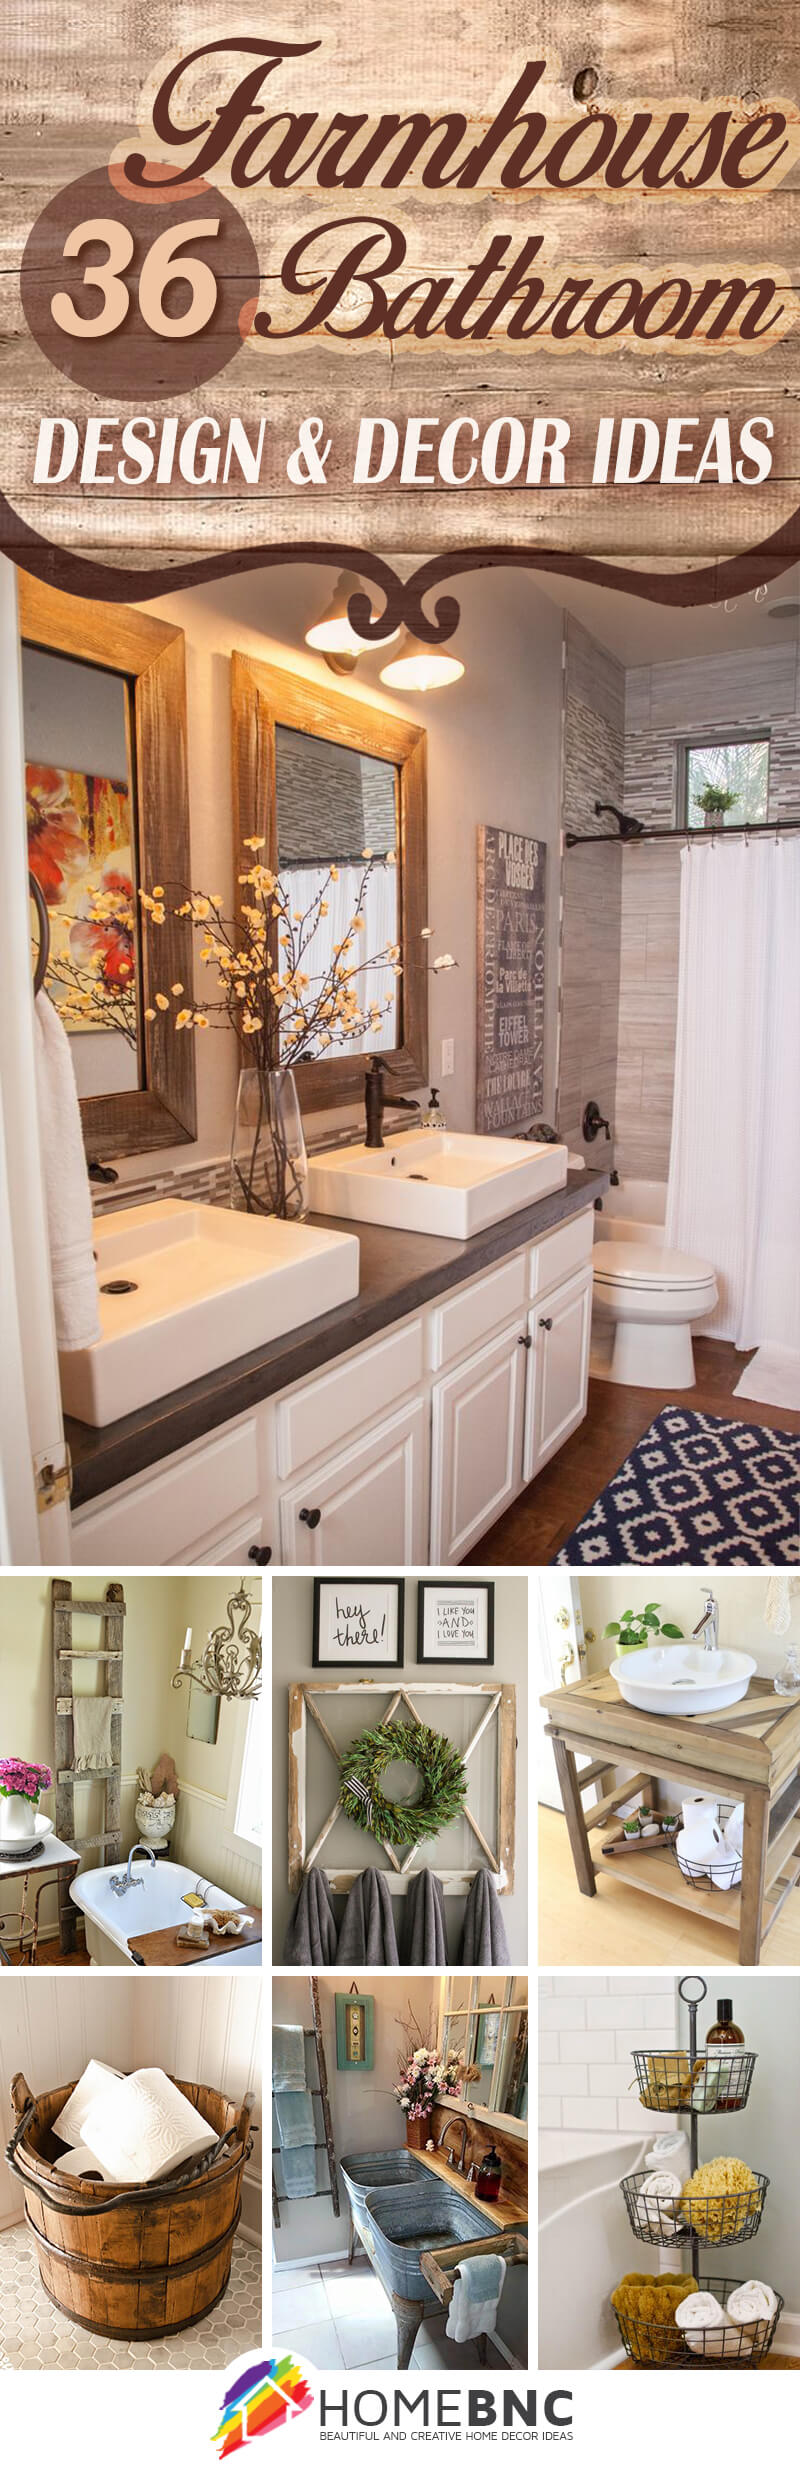 36 Best Farmhouse Bathroom Design and Decor Ideas for 2017